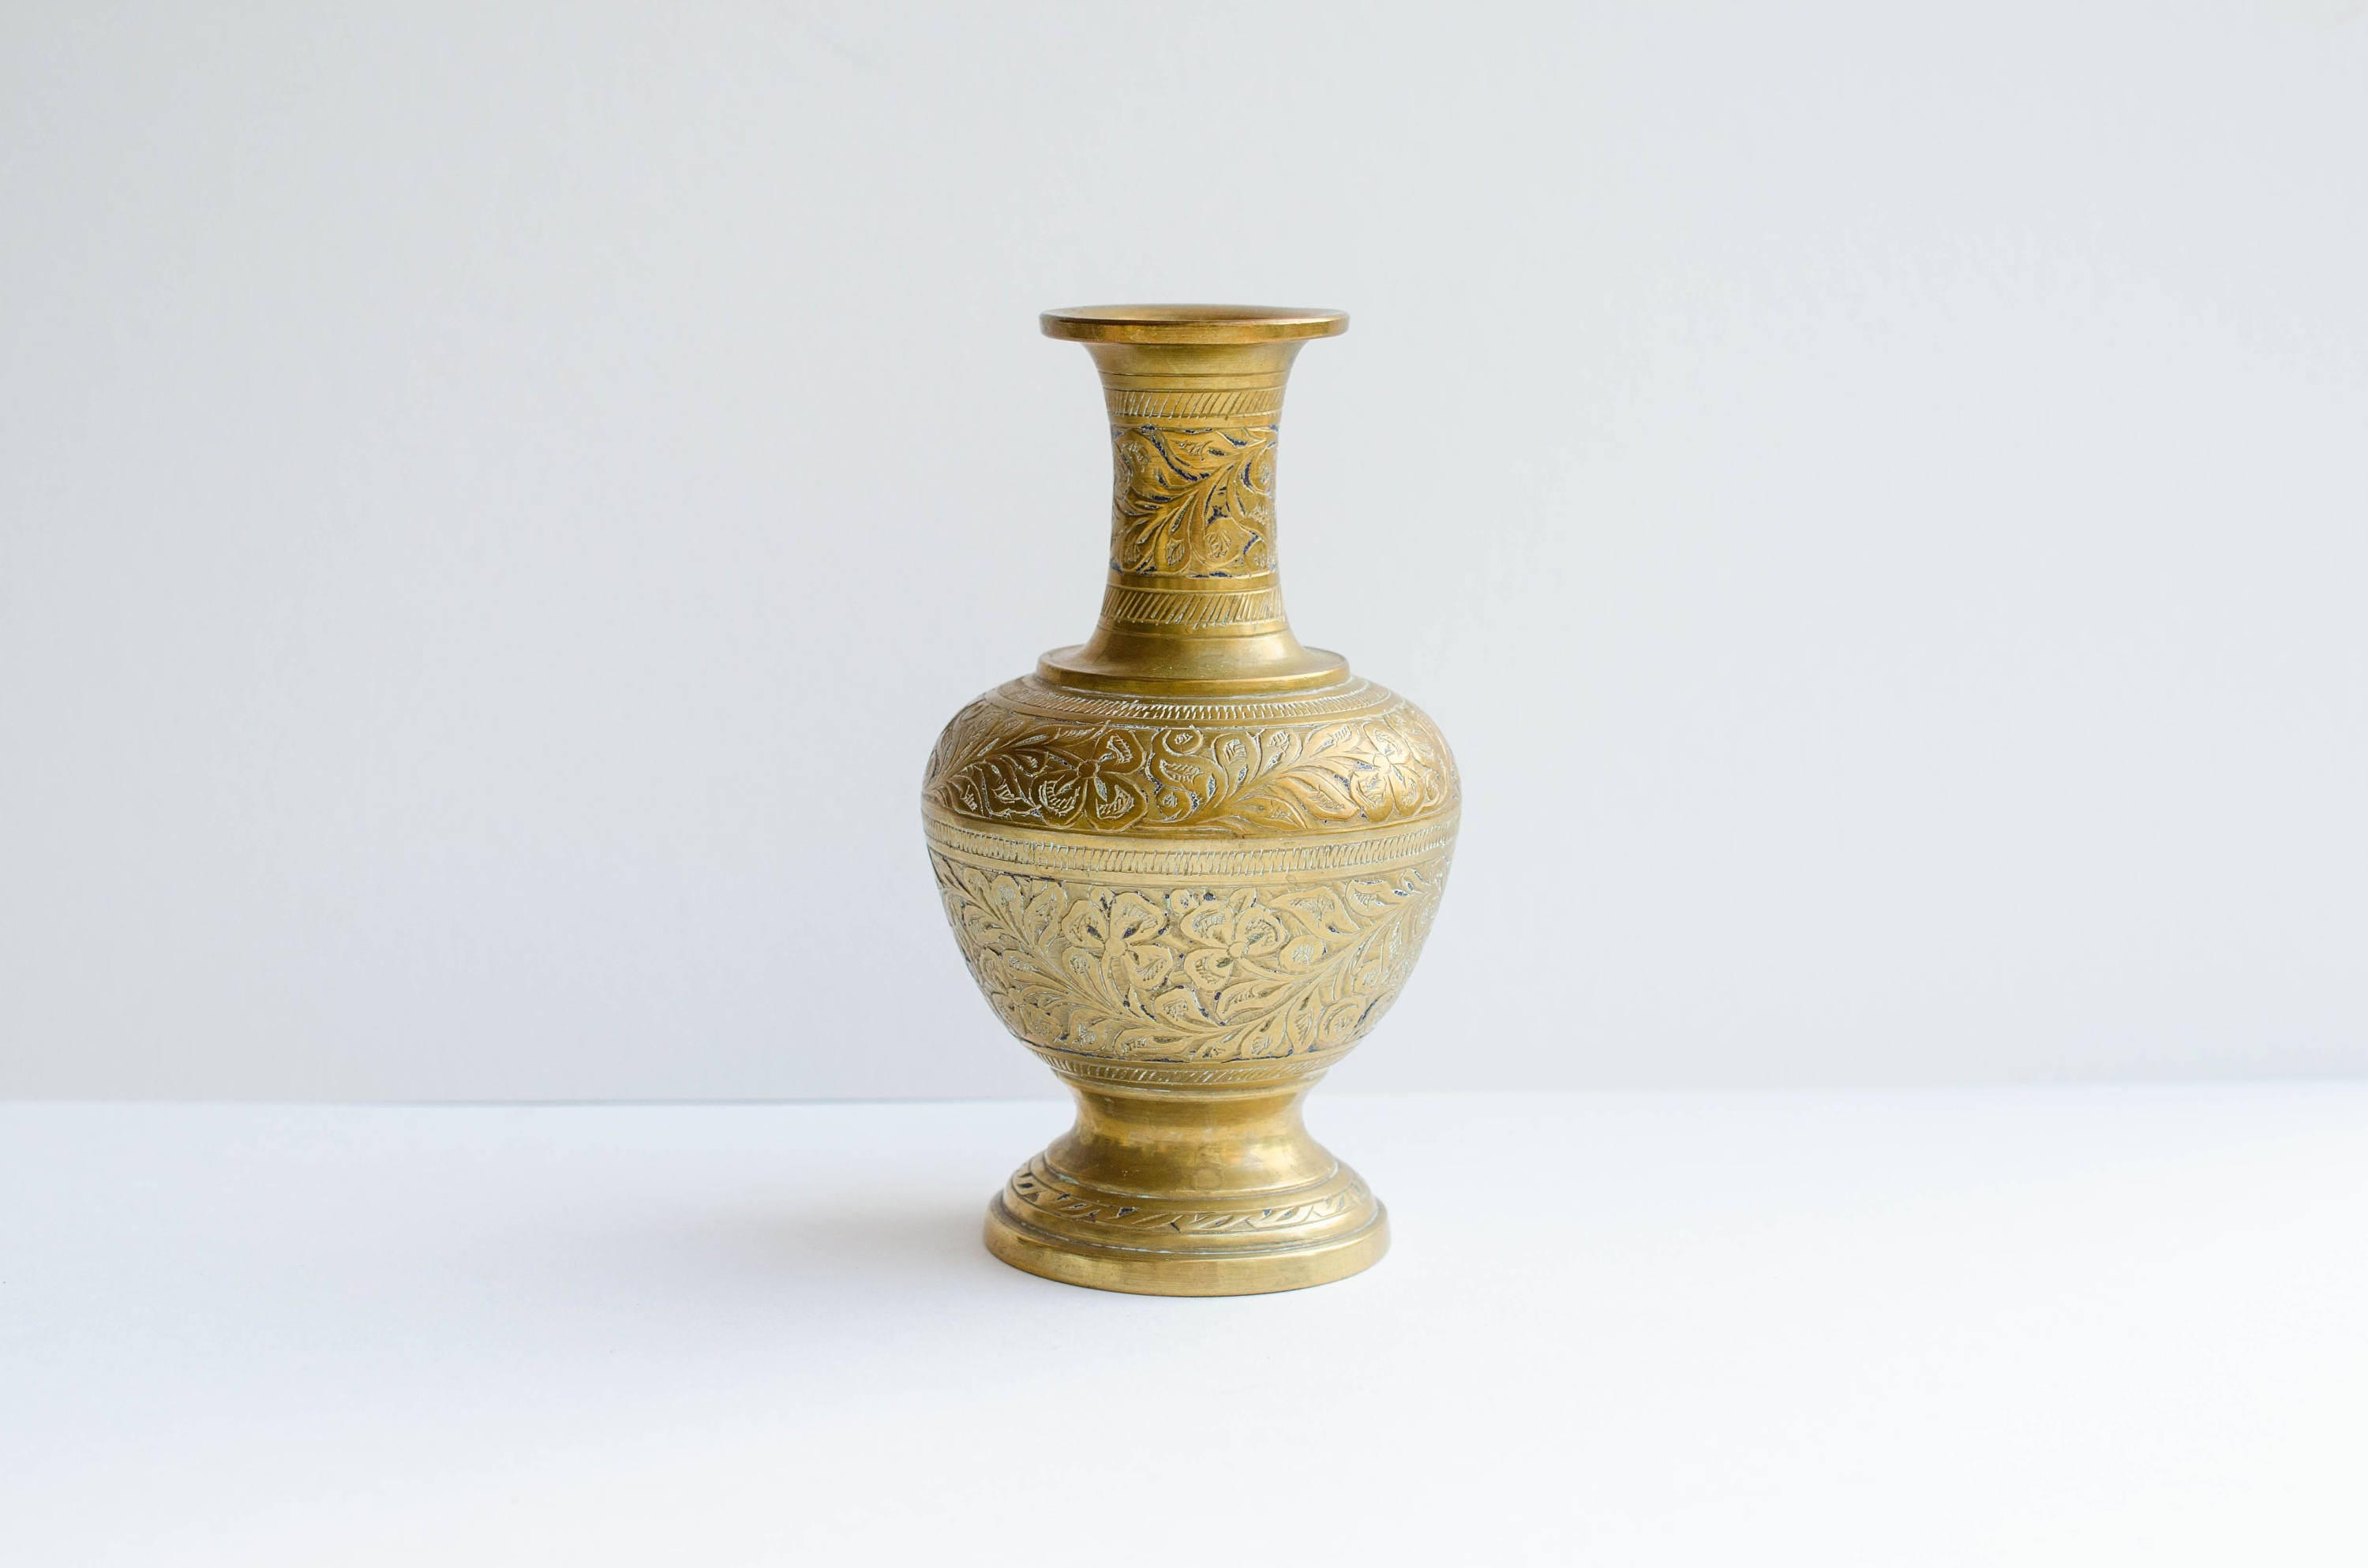 Vintage solid brass vase hand engraved floral motif vase made vintage solid brass vase hand engraved floral motif vase made in india reviewsmspy